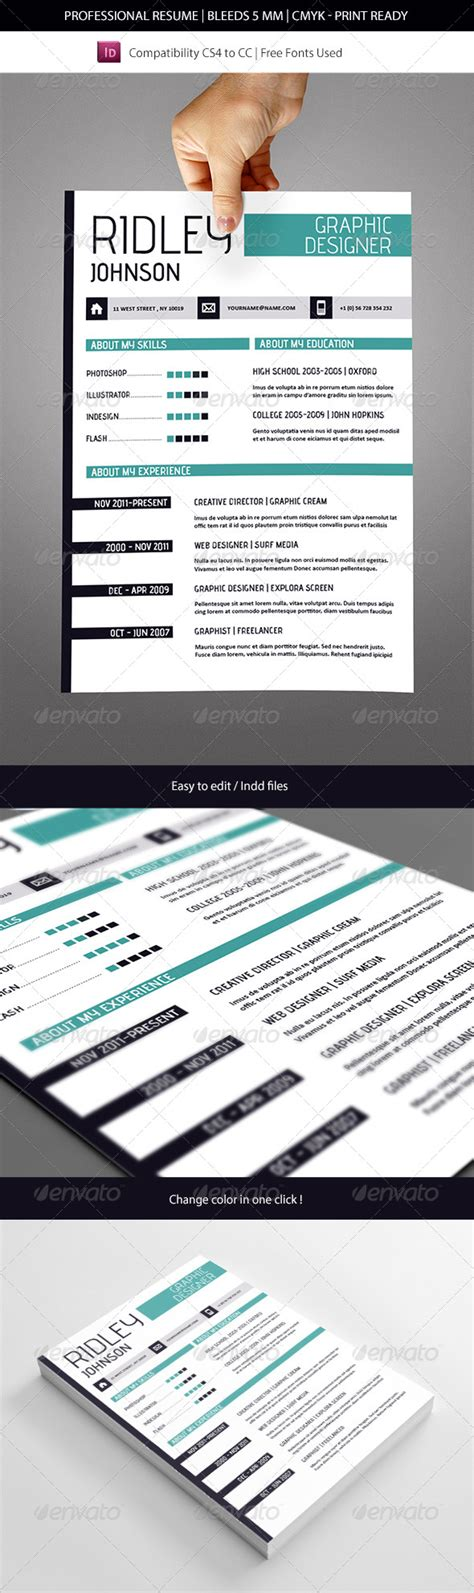 resume template indesign cs6 creative indesign resume template by franceschi rene graphicriver